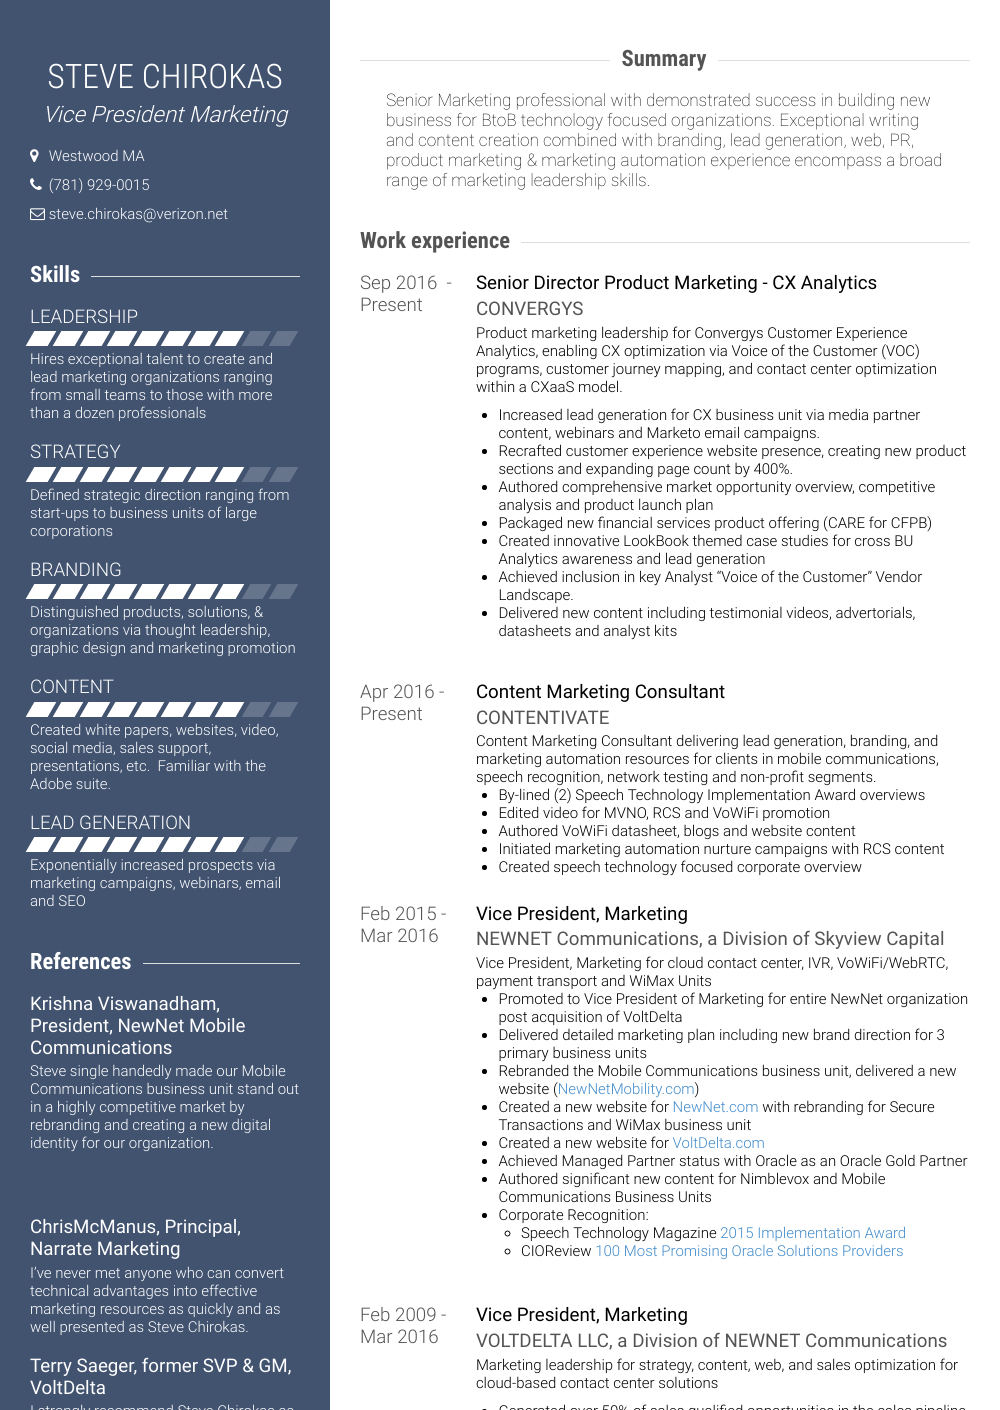 Vice President, Marketing Resume Sample